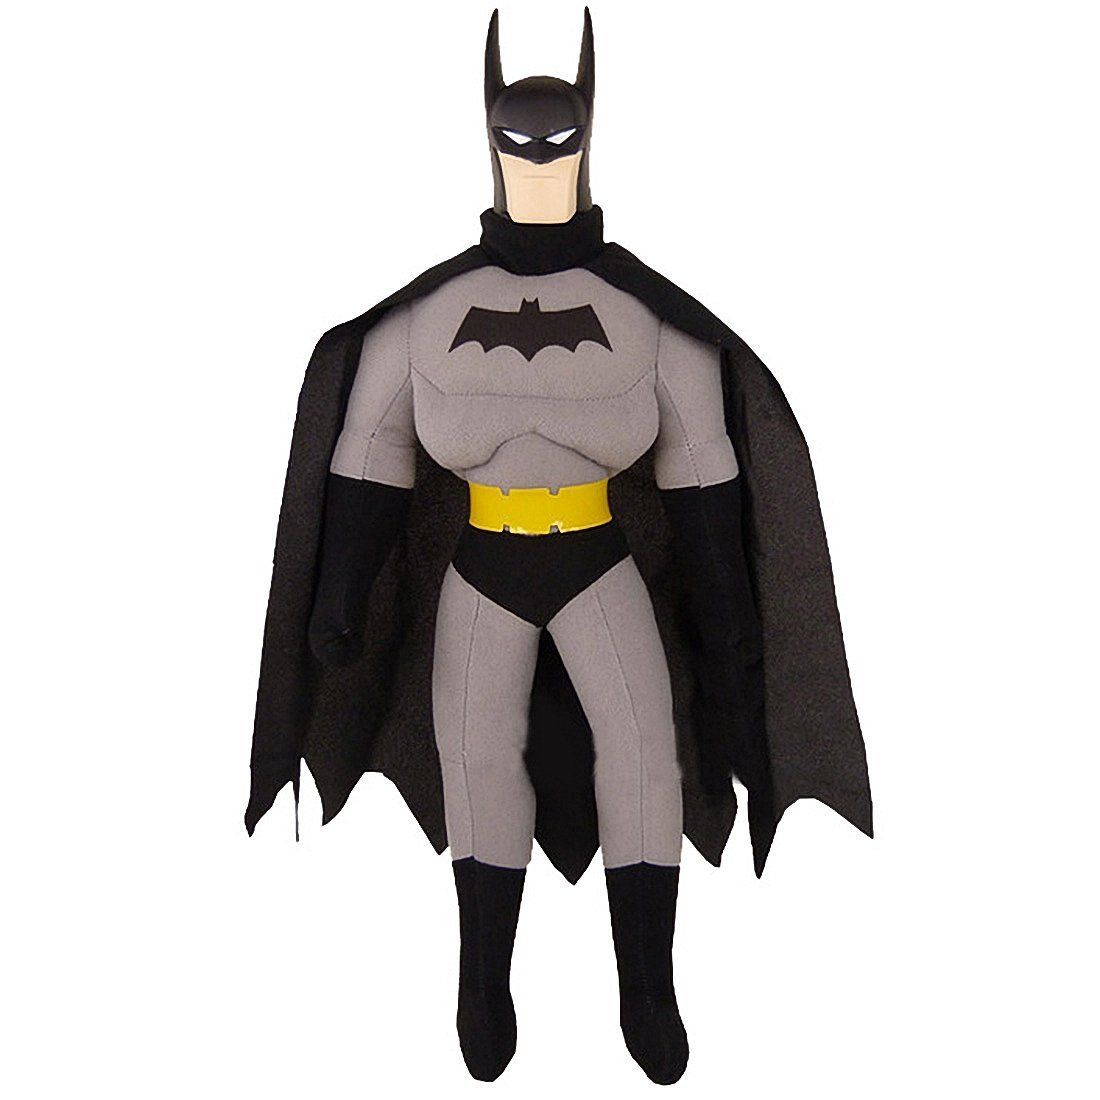 Toy Story 15inch Superhero Avengers Batman Stuffed Plush Doll Grey